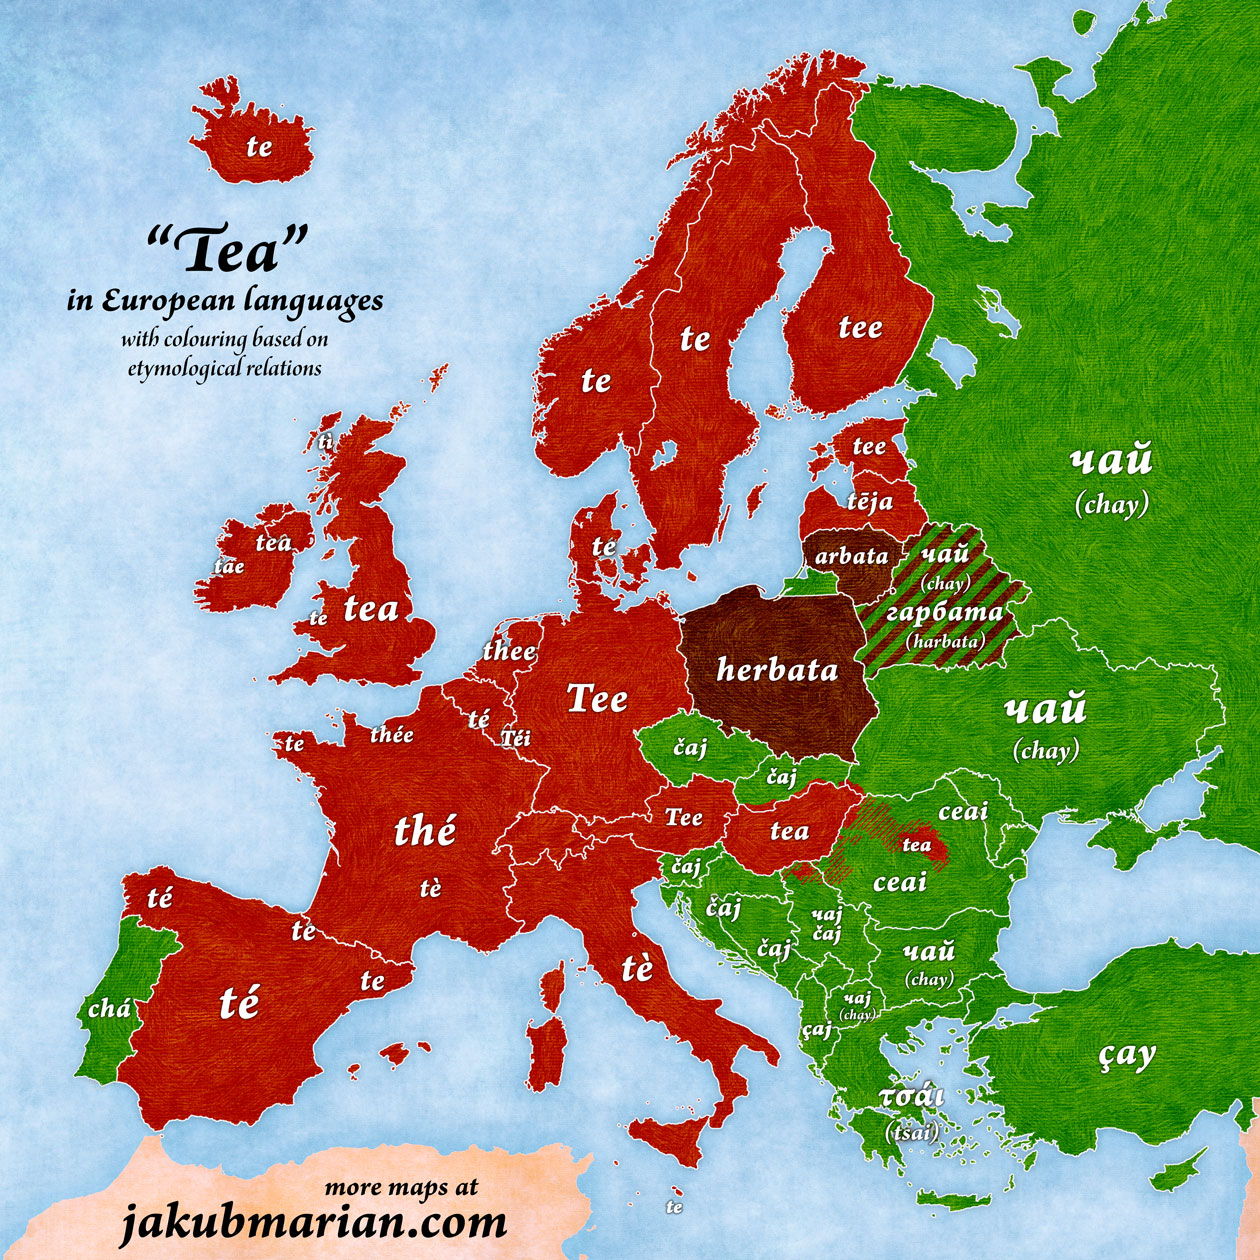 translations of tea into French, German, Spanish, Italian and other languages